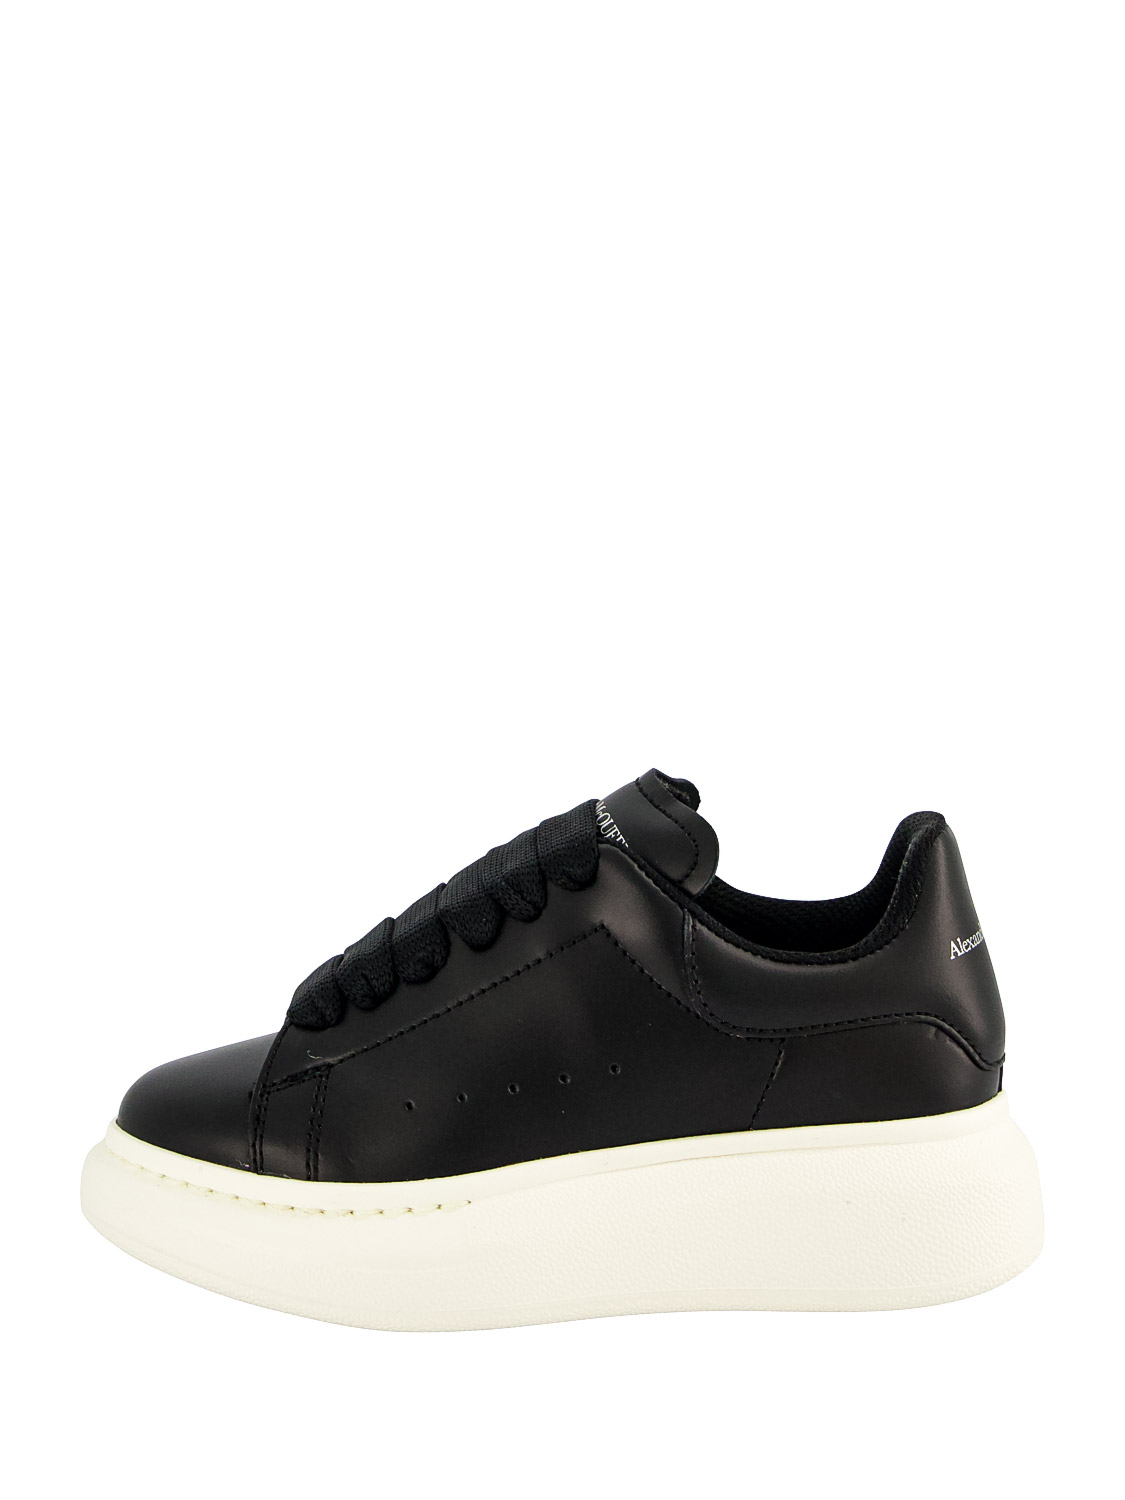 Alexander Mcqueen Boots KIDS SNEAKERS FREEORE FOR FOR BOYS AND FOR...